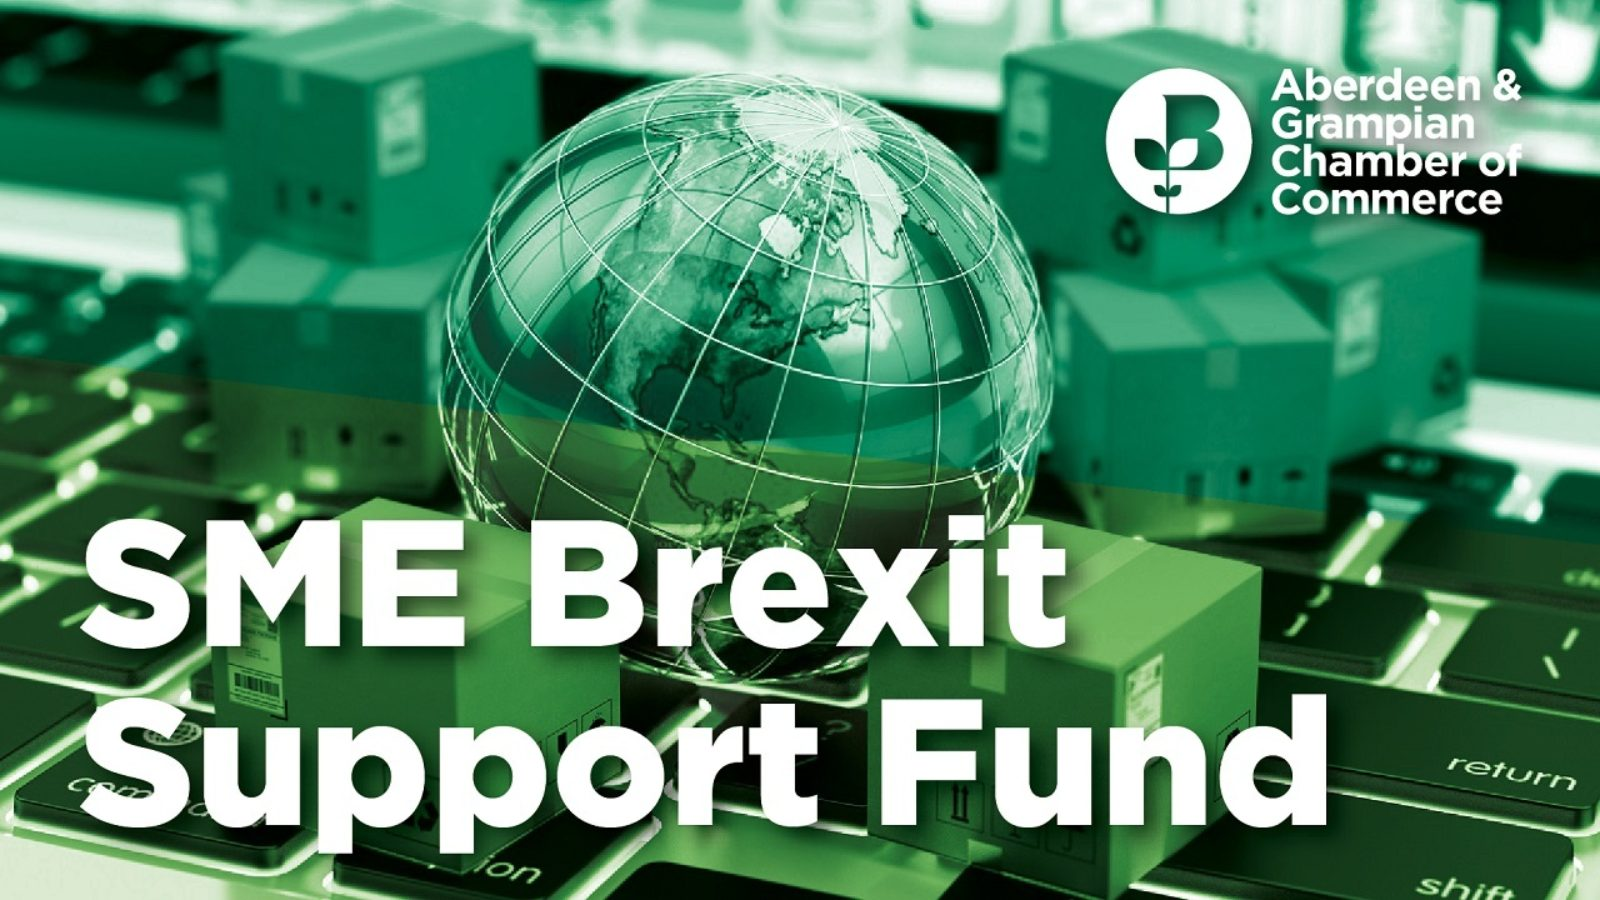 Find out about the government grant that's available to help SMEs fund import and export training, and how the Chamber can help